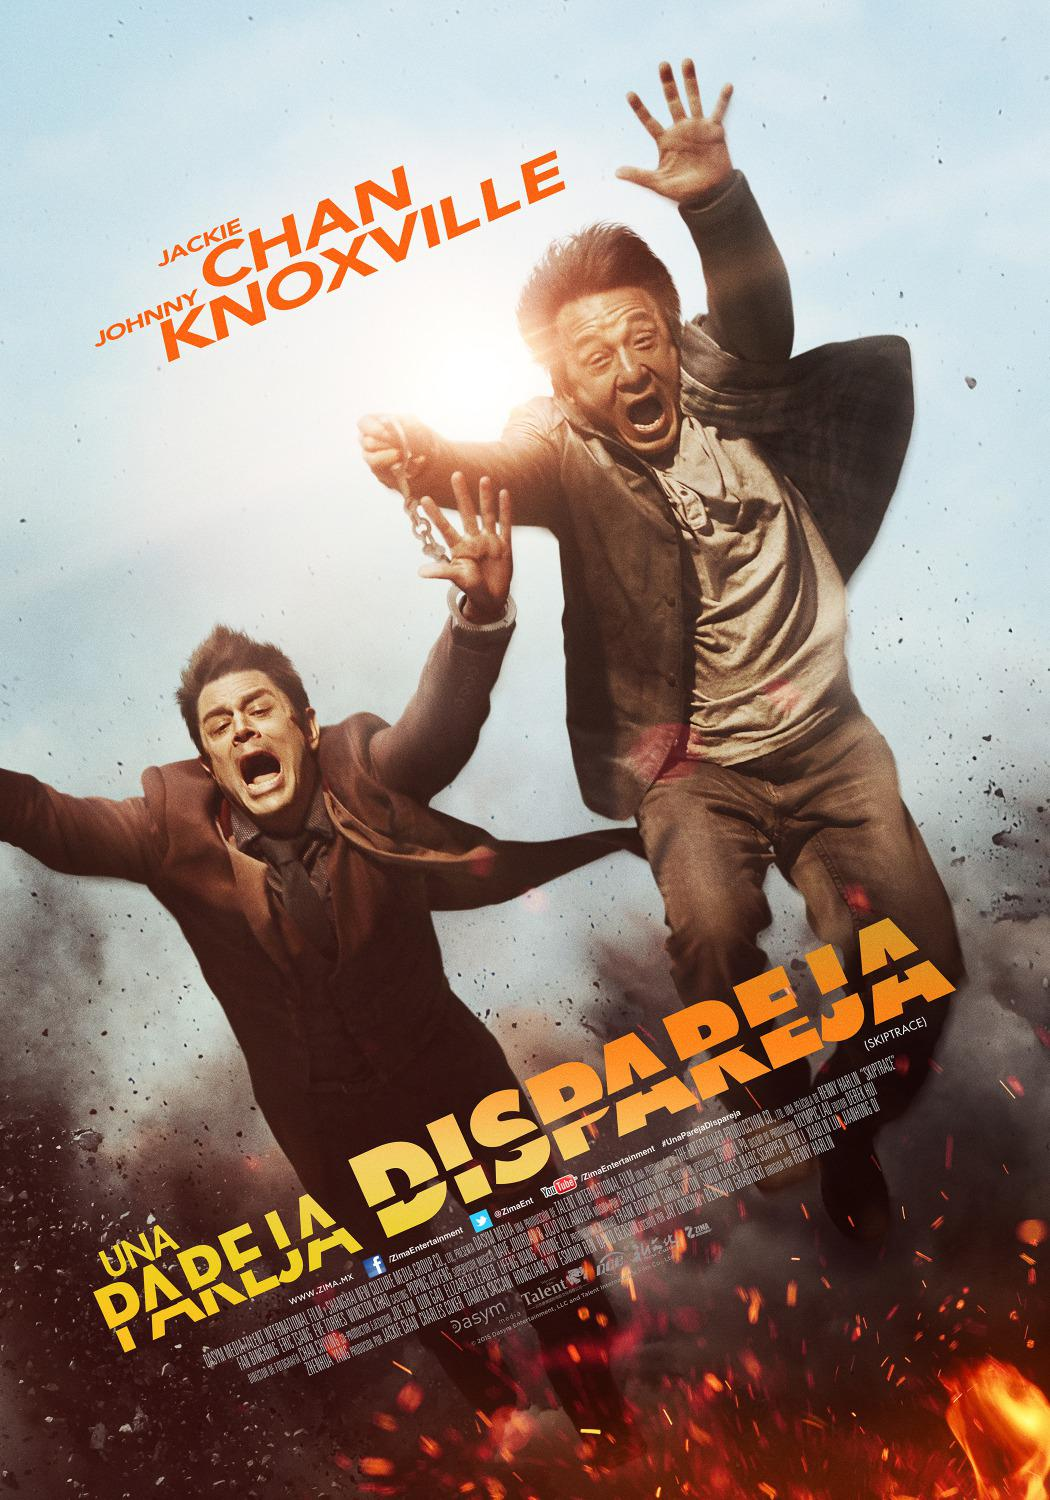 Skiptrace - Jackie Chan - Johnny Knoxville